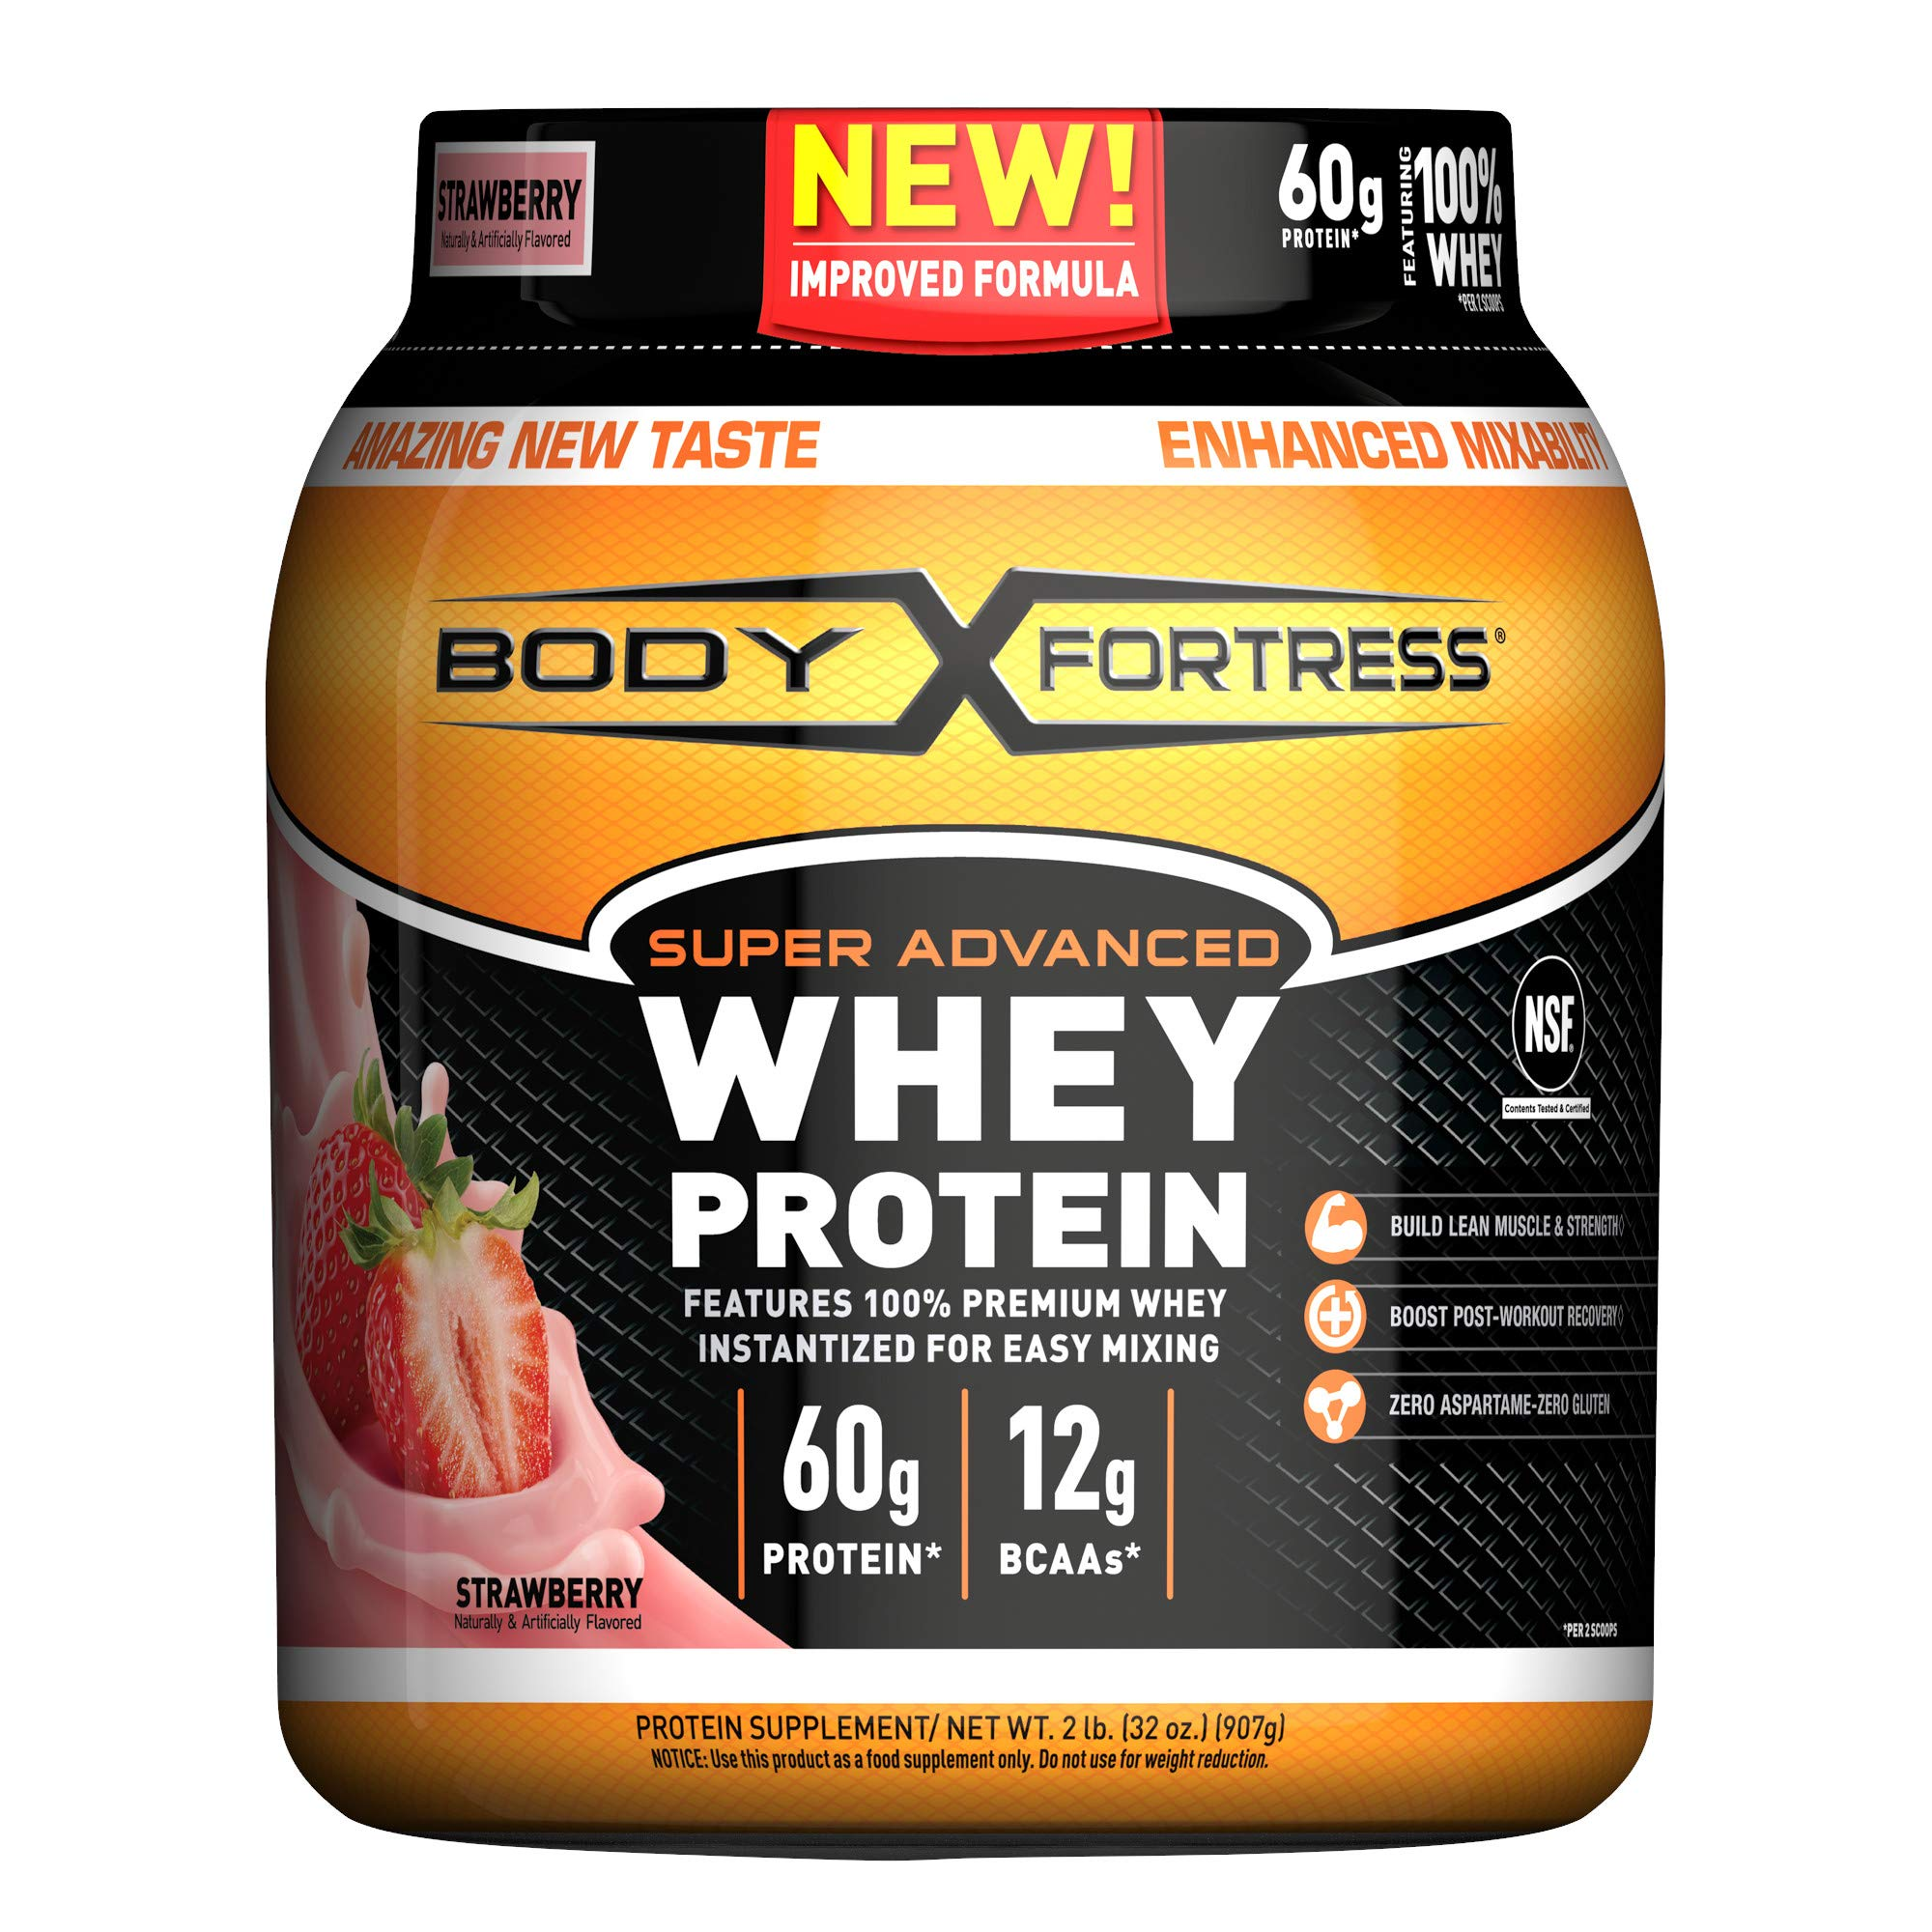 Body Fortress Super Advanced Whey Protein Powder, Gluten Free, Strawberry, 2 lbs (Packaging May Vary) by Body Fortress